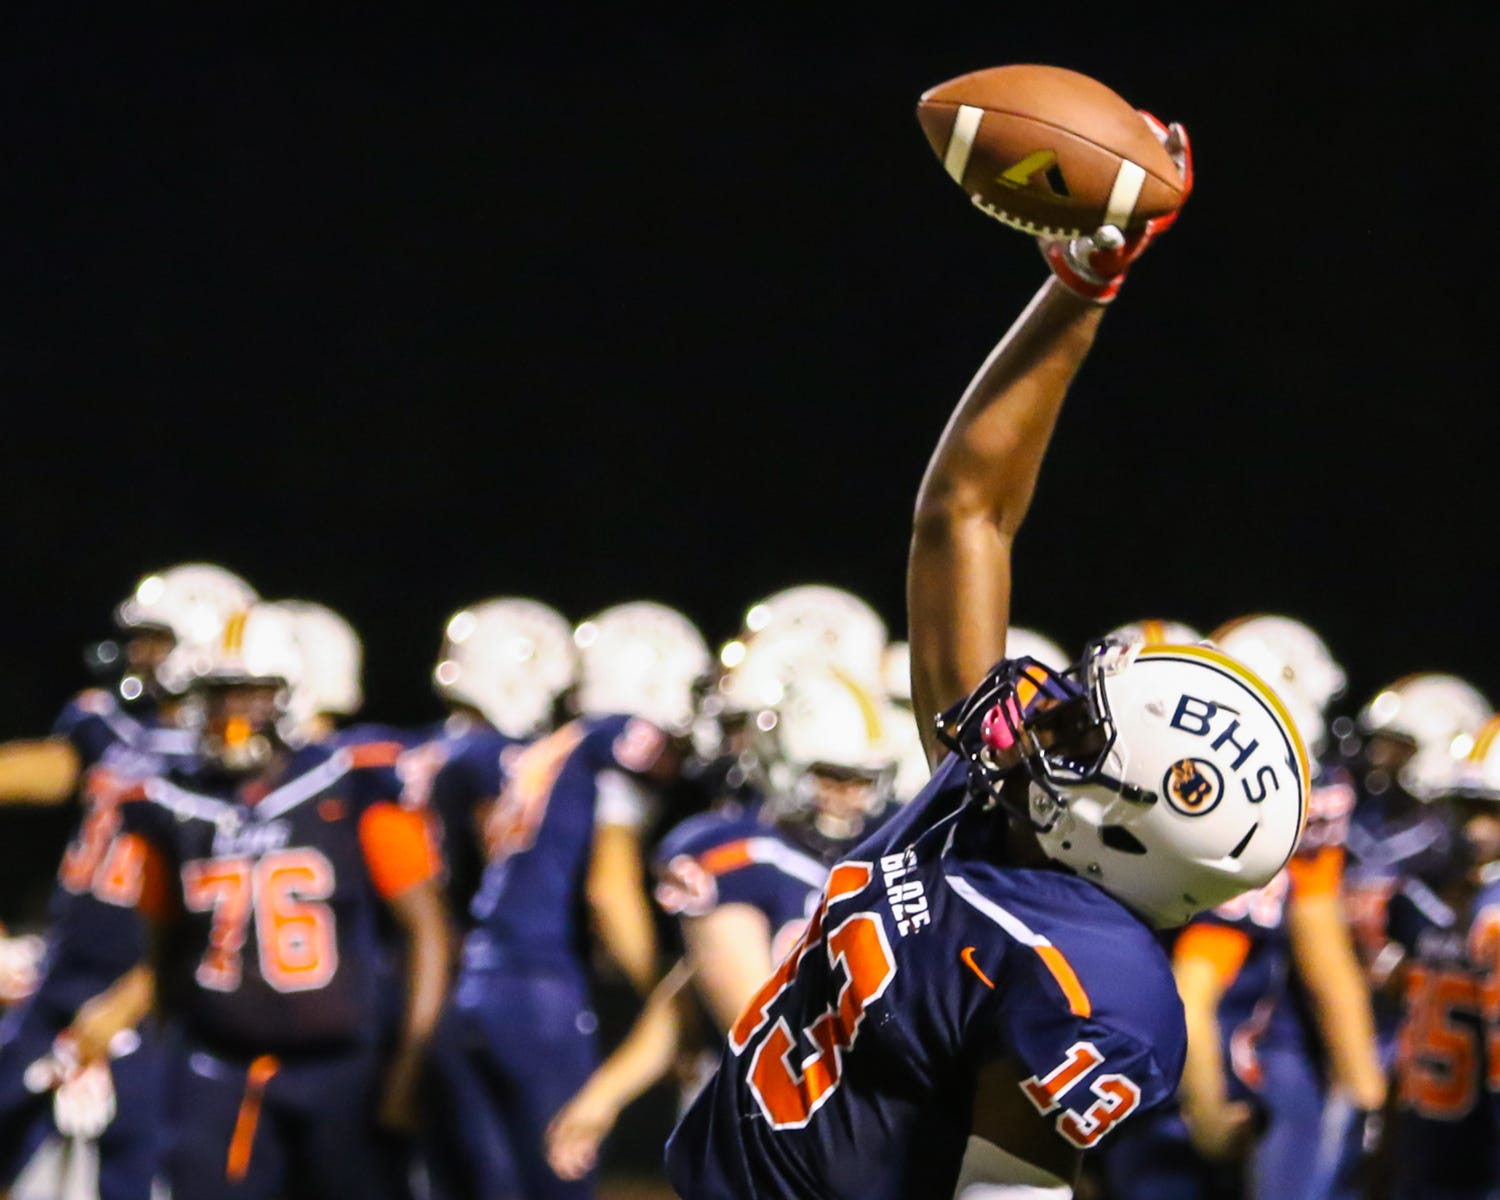 2018 Tennessee High School Football Playoff Predictions - image 5